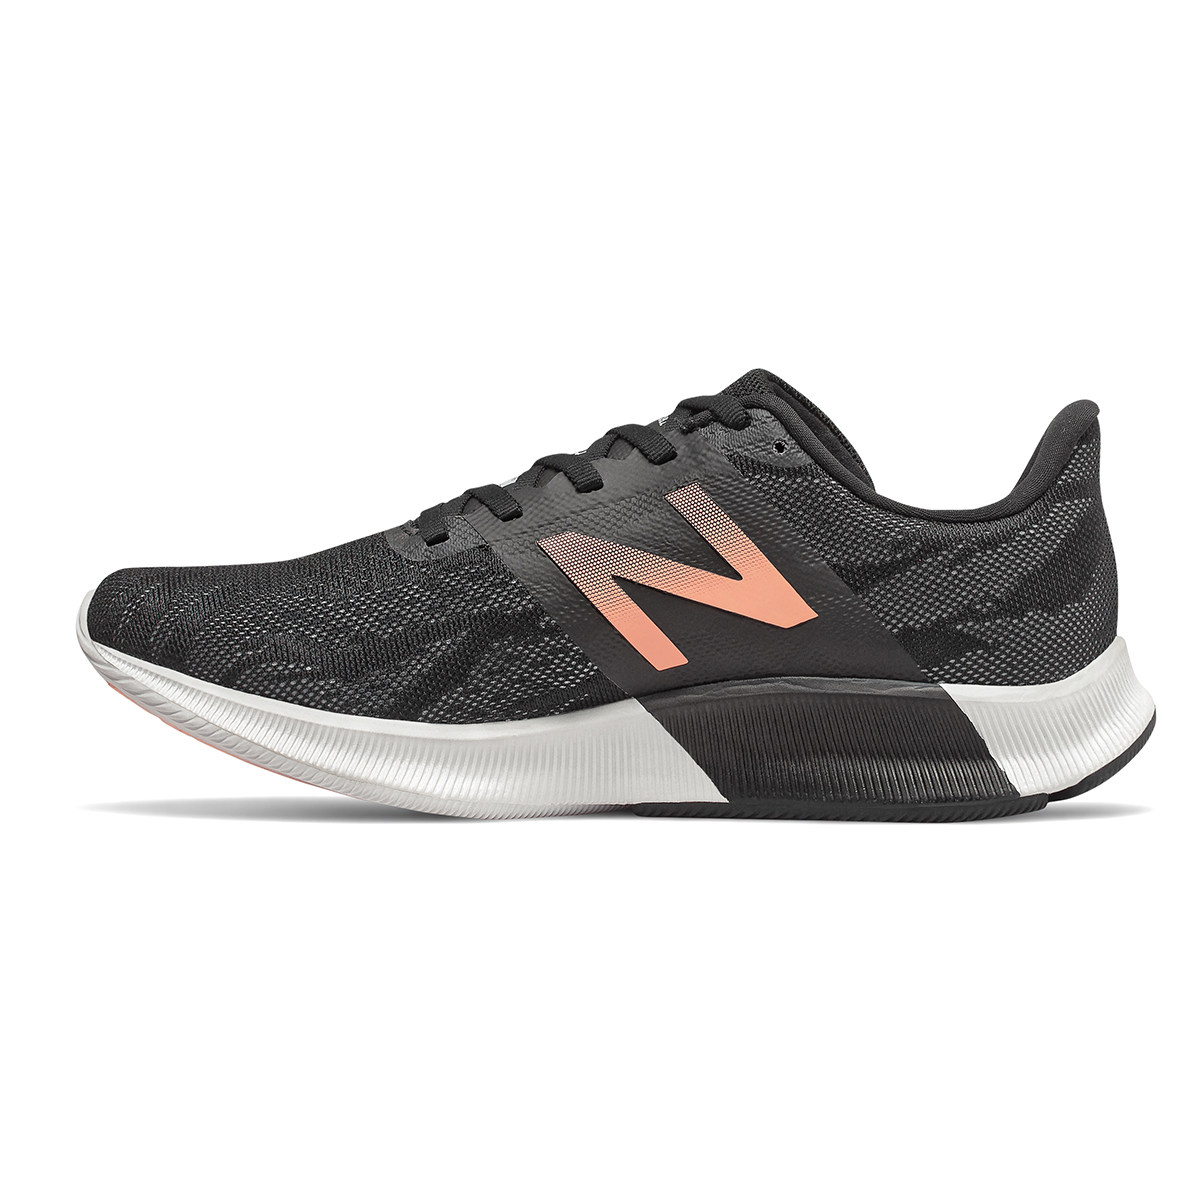 Women's New Balance Fuelcell 890V8 Running Shoe, , large, image 2